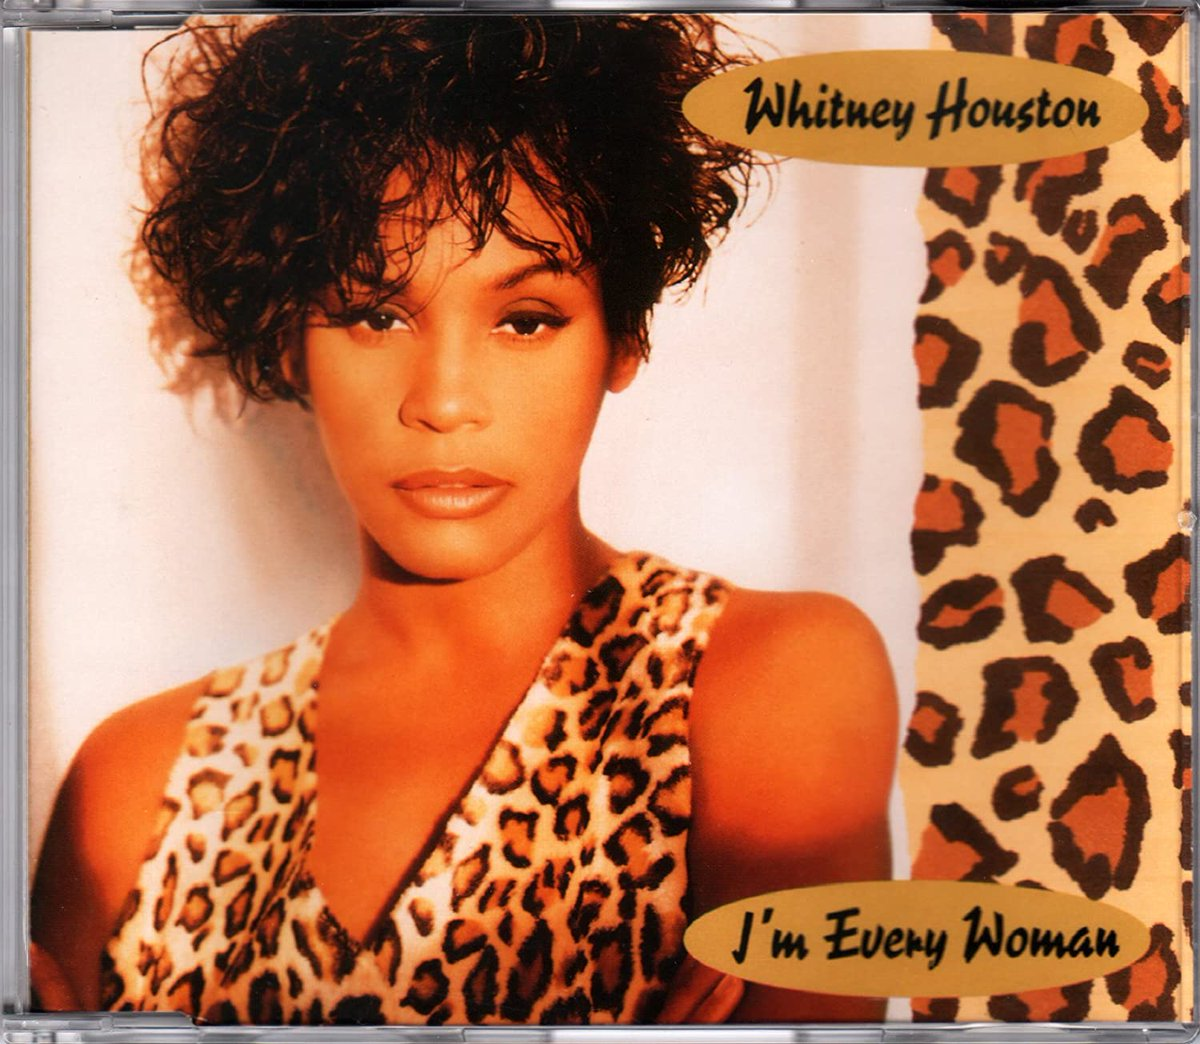 #Np I'M EVERY WOMAN BY WHITNEY HOUSTON  #RoadShow with @iamdorkong   #deekay  #BeSafe  #AdoptionDay #Roadsafetyweek #OldiesButGoodies #OldSchoolWednesday   Listen live: https://t.co/JVTMuV7sdn https://t.co/bEWtrECkpx